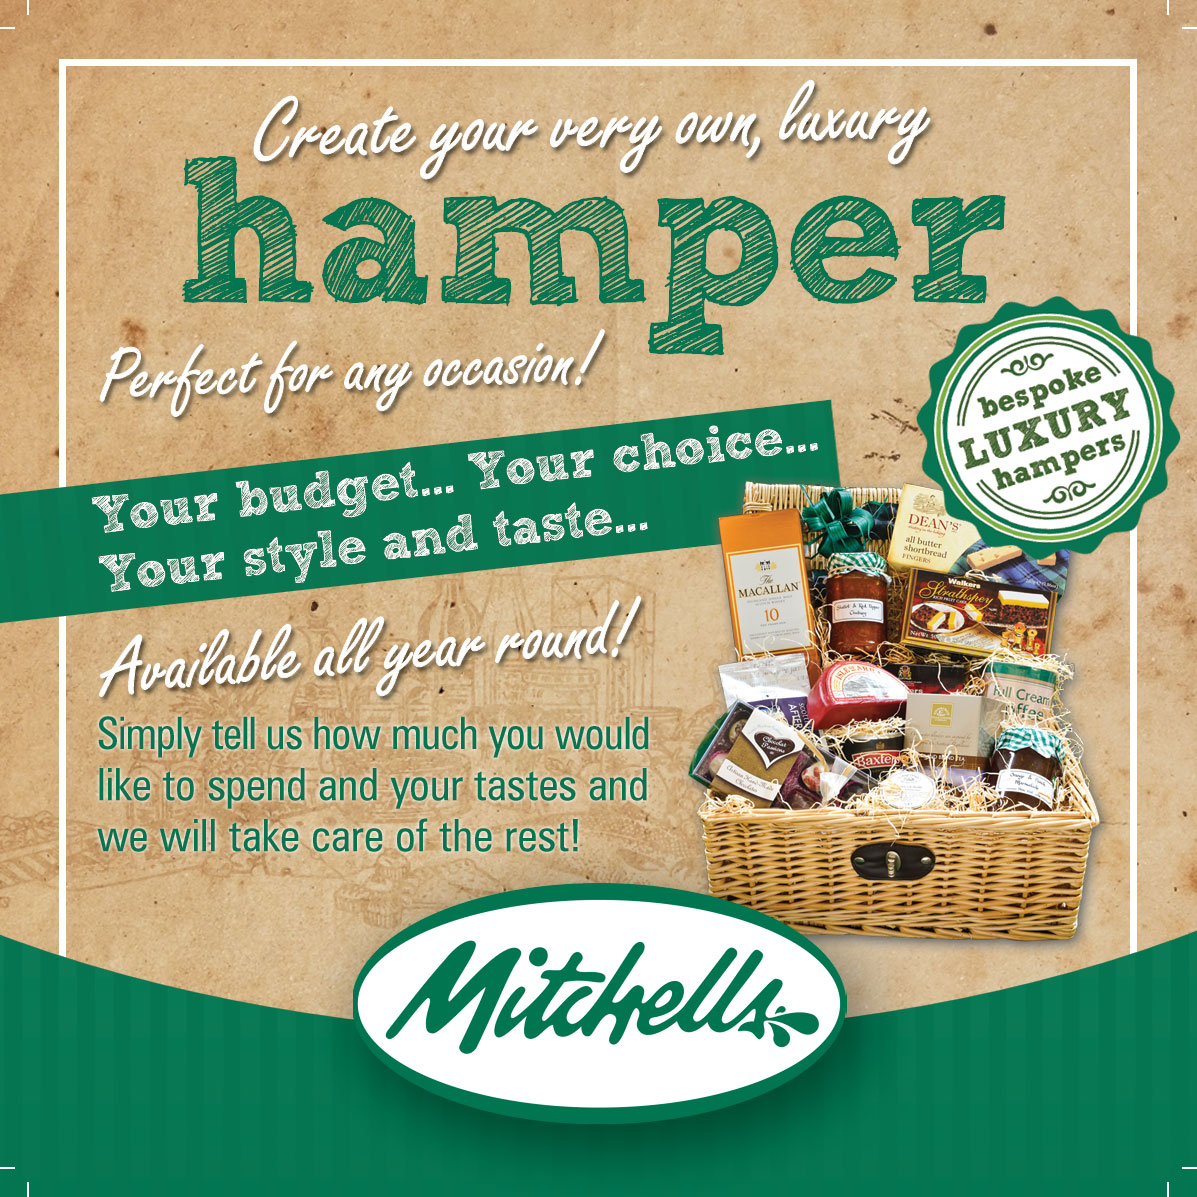 Mitchells of inverurie hampers the perfect